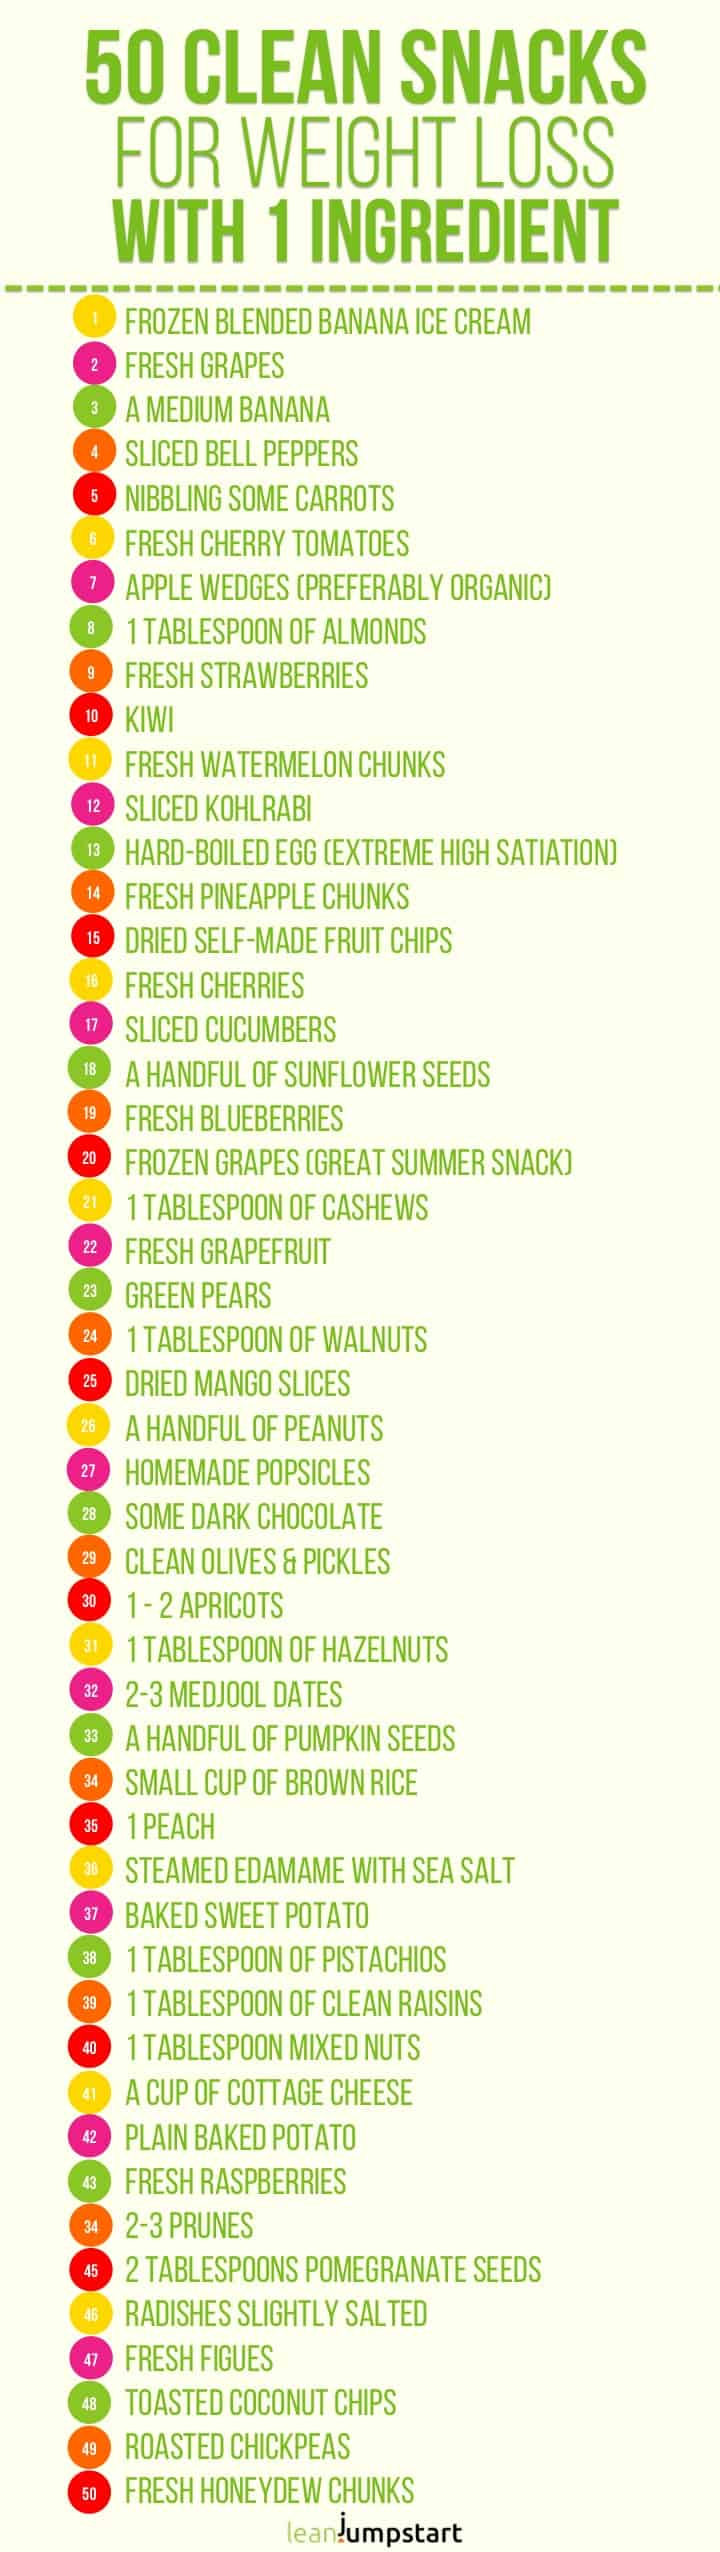 50 clean snacks with one ingredient